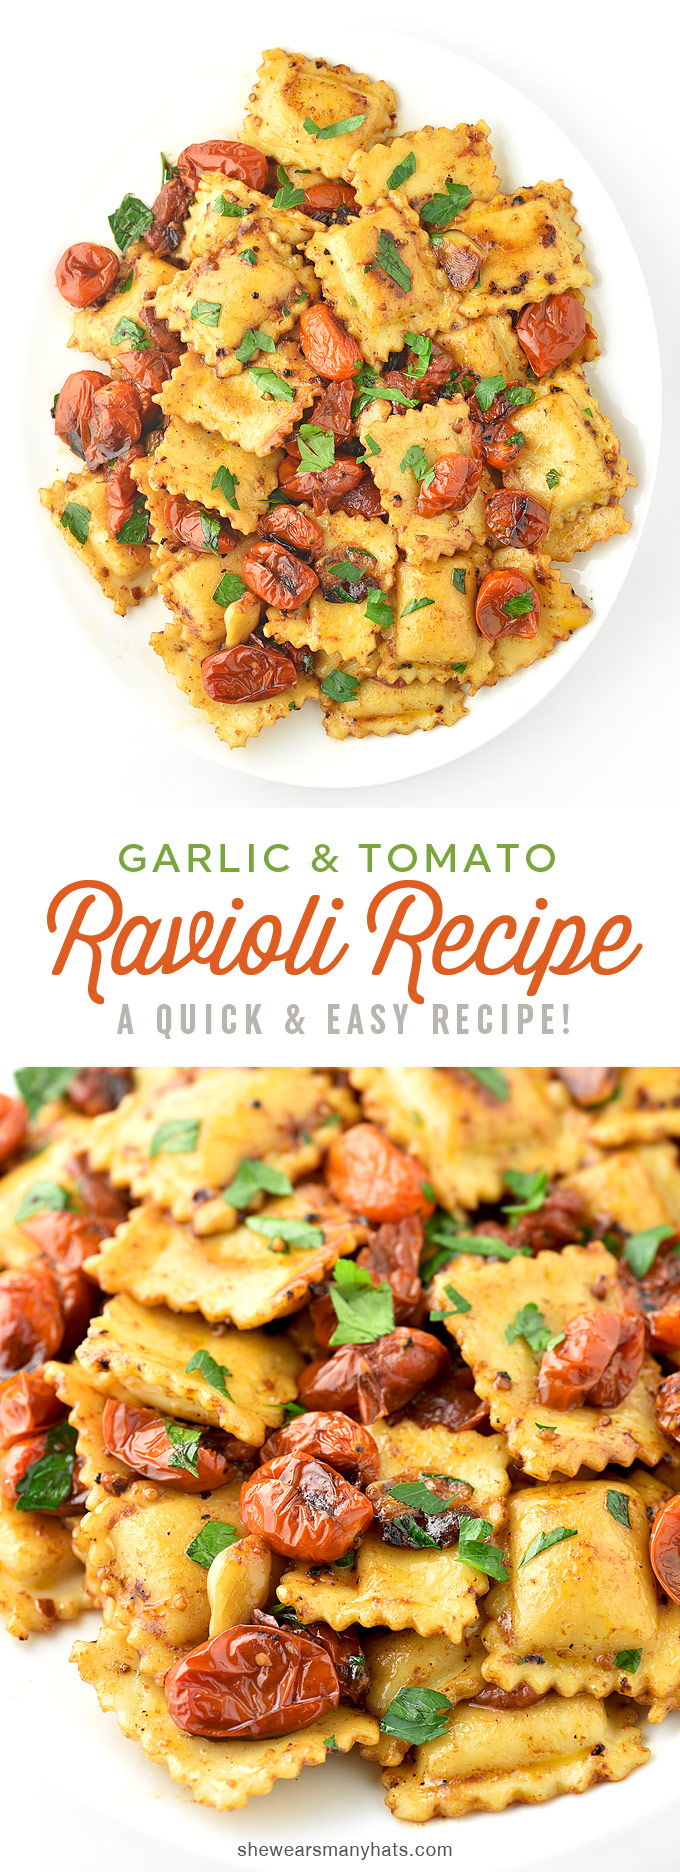 easy-spicy-garlic-tomato-ravioli-recipe-collage